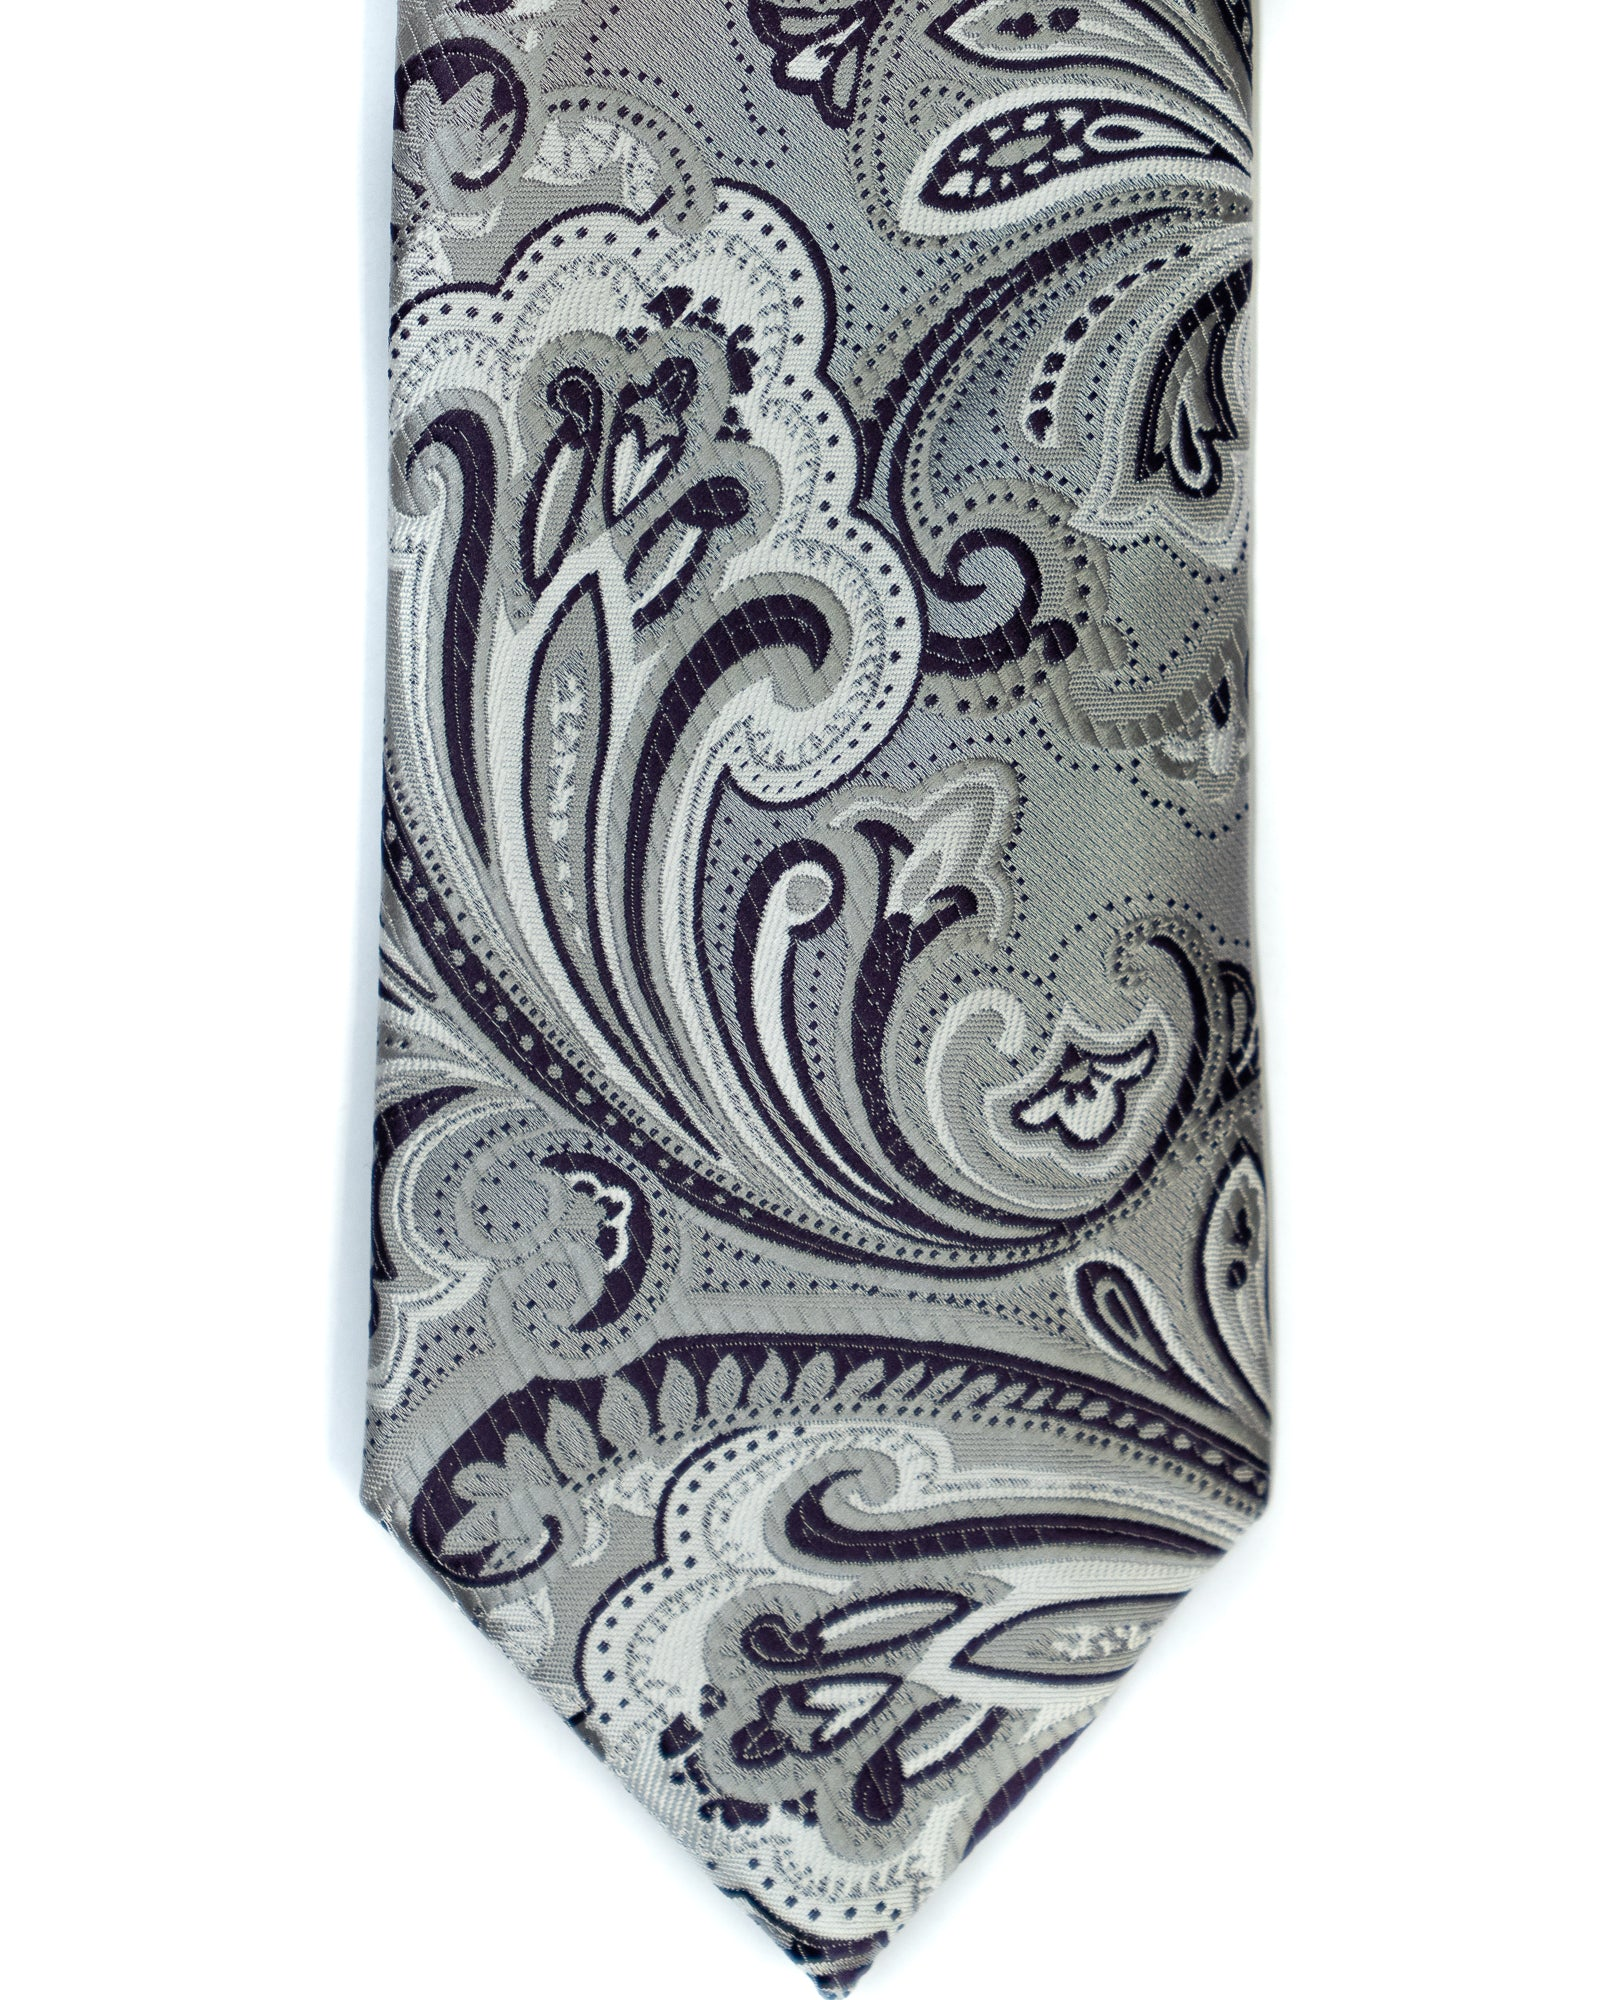 Venturi Uomo Exploded Paisley Tie in Silver with Purple - Rainwater's Men's Clothing and Tuxedo Rental